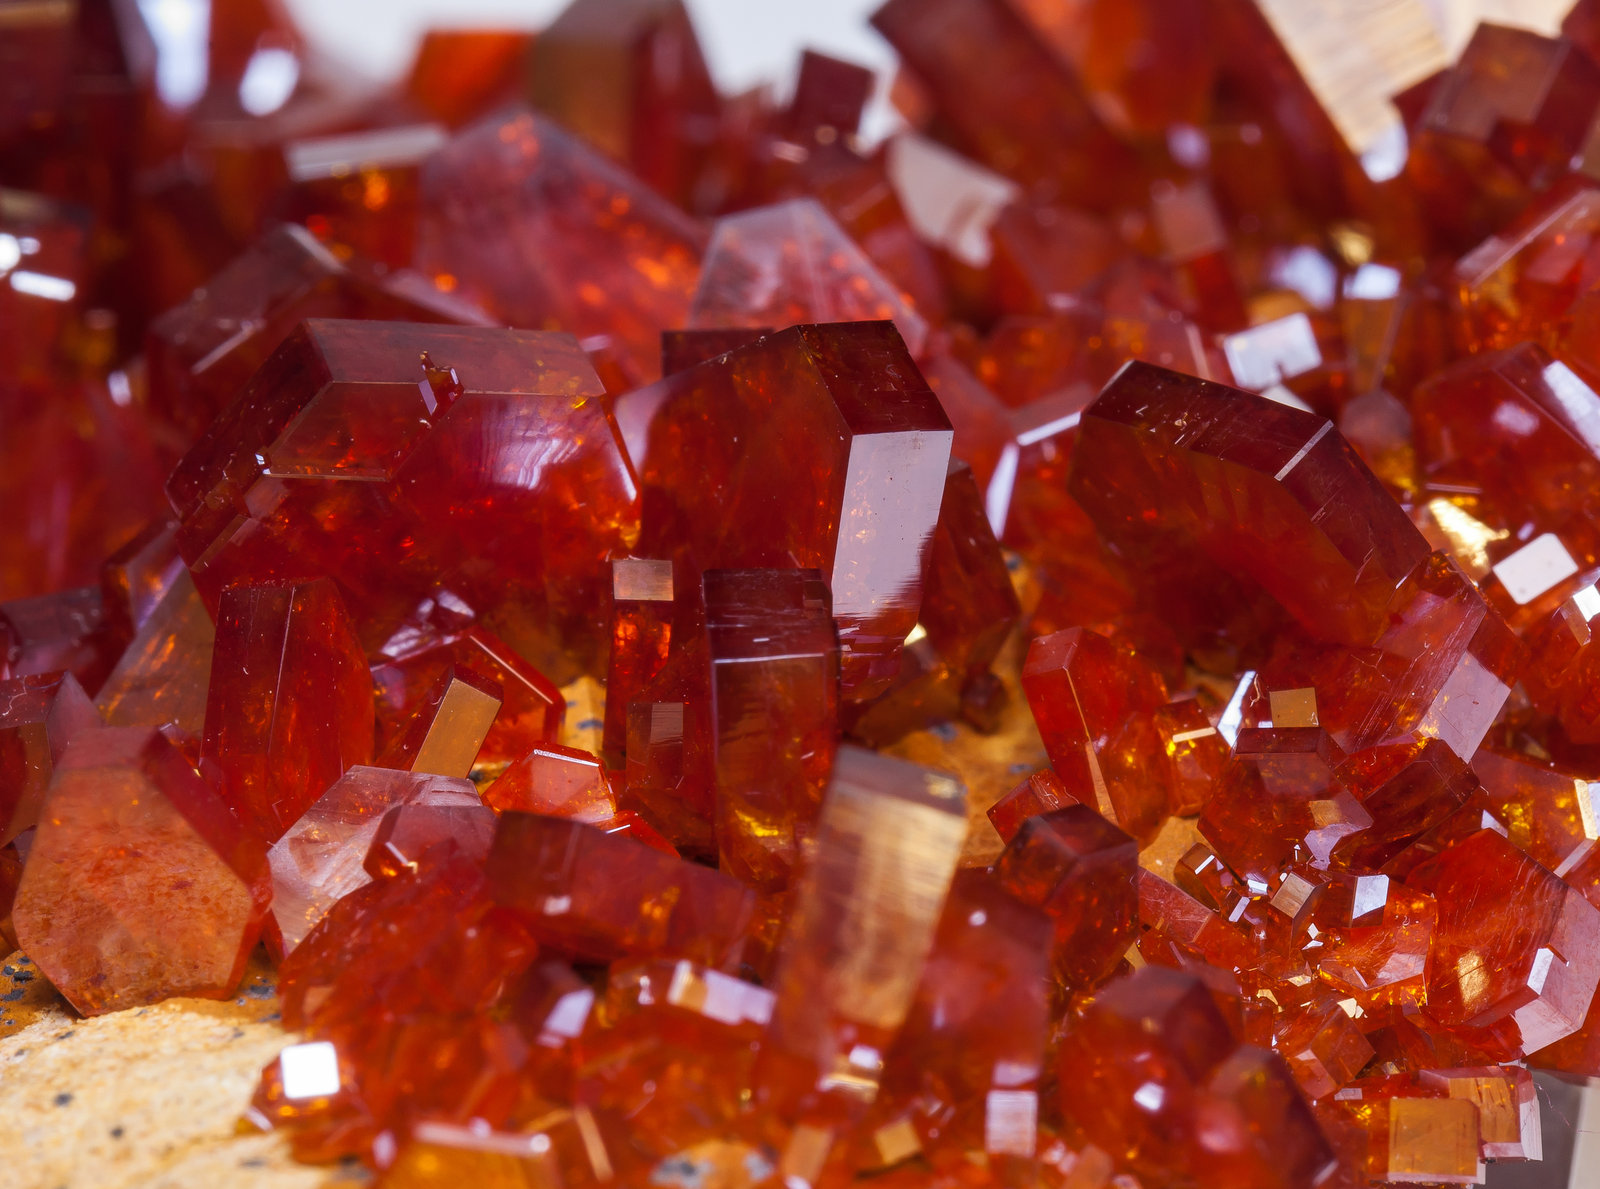 specimens/s_imagesAM2/Vanadinite-EB27AM2d.jpg